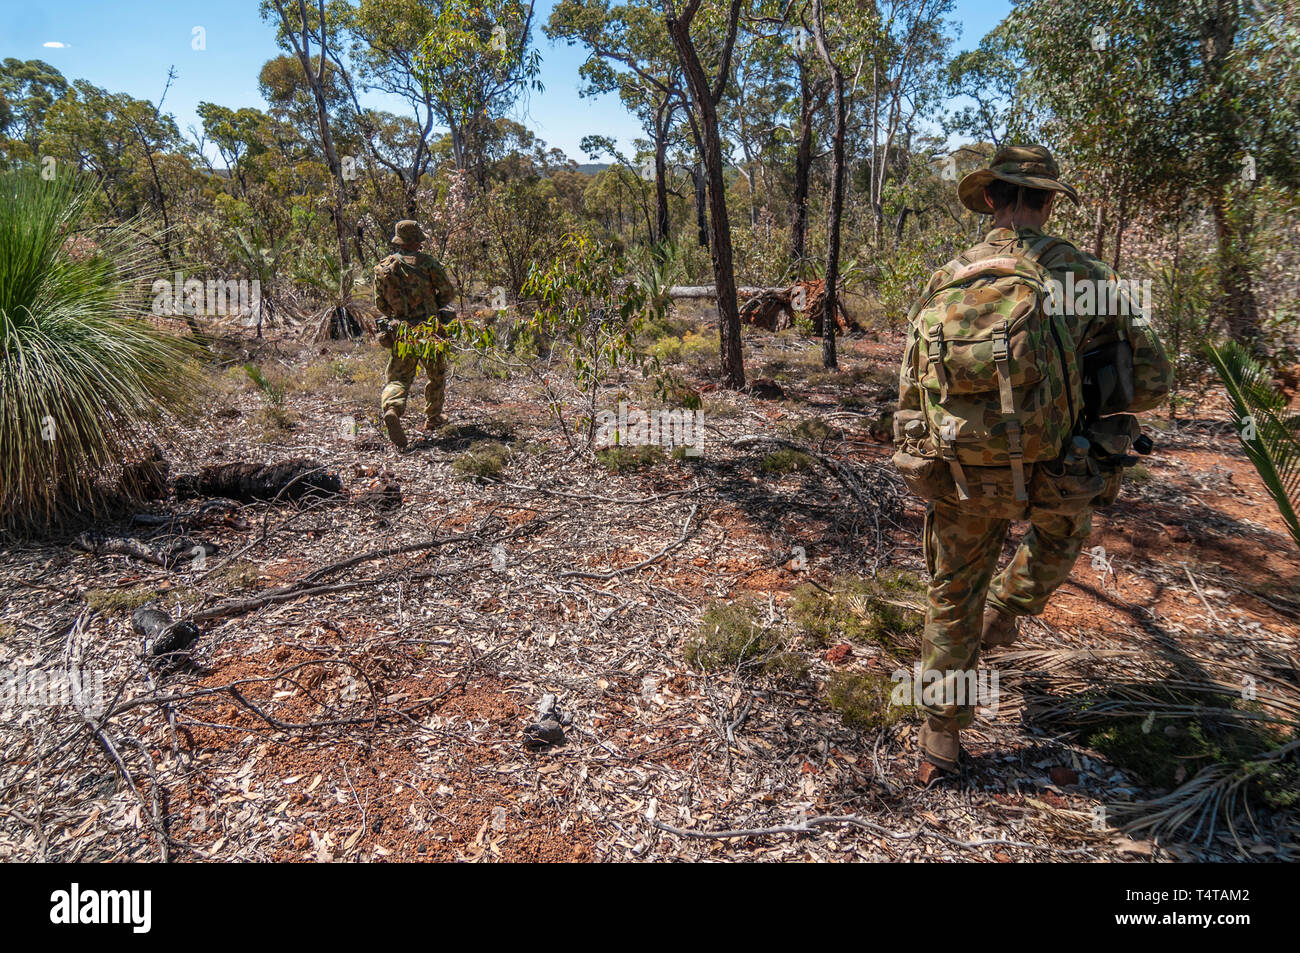 6e9eba7afbd Australian Army reserve soldiers on an exercise in the Australian bush.  They are wearing typical